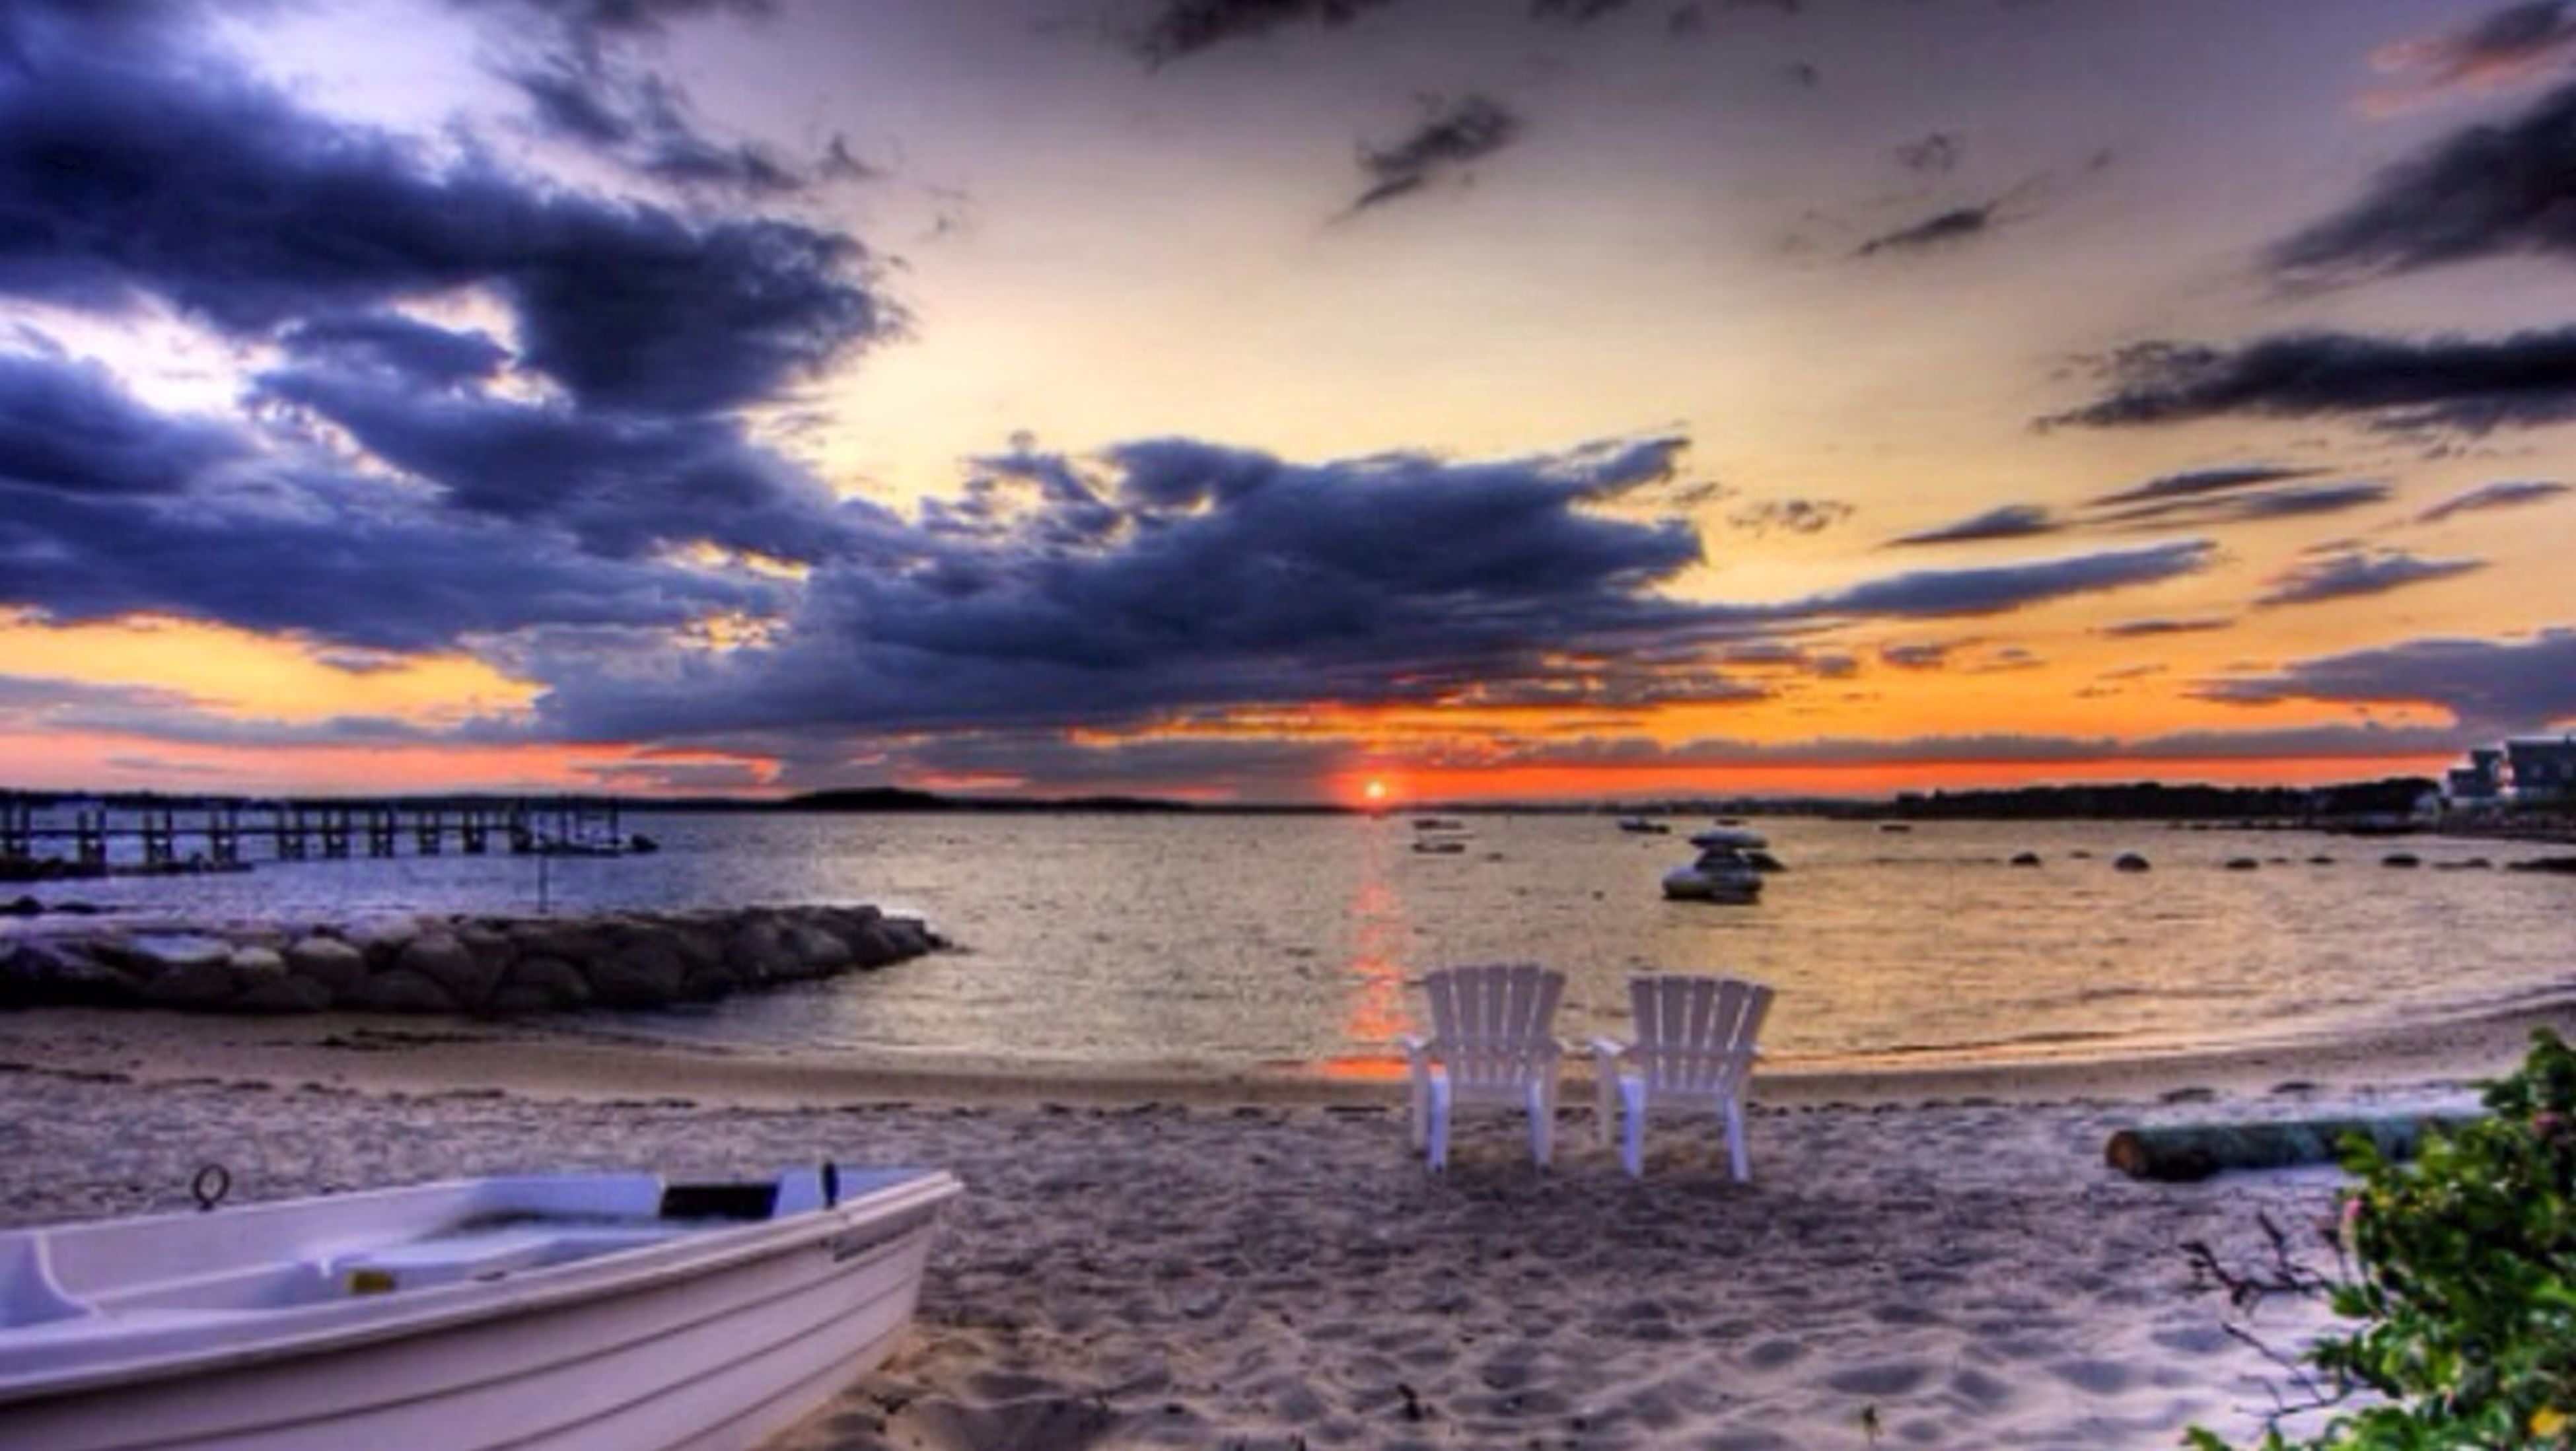 beach, sea, water, sky, sunset, shore, cloud - sky, tranquil scene, scenics, horizon over water, tranquility, beauty in nature, sand, nature, cloudy, idyllic, boat, nautical vessel, moored, cloud